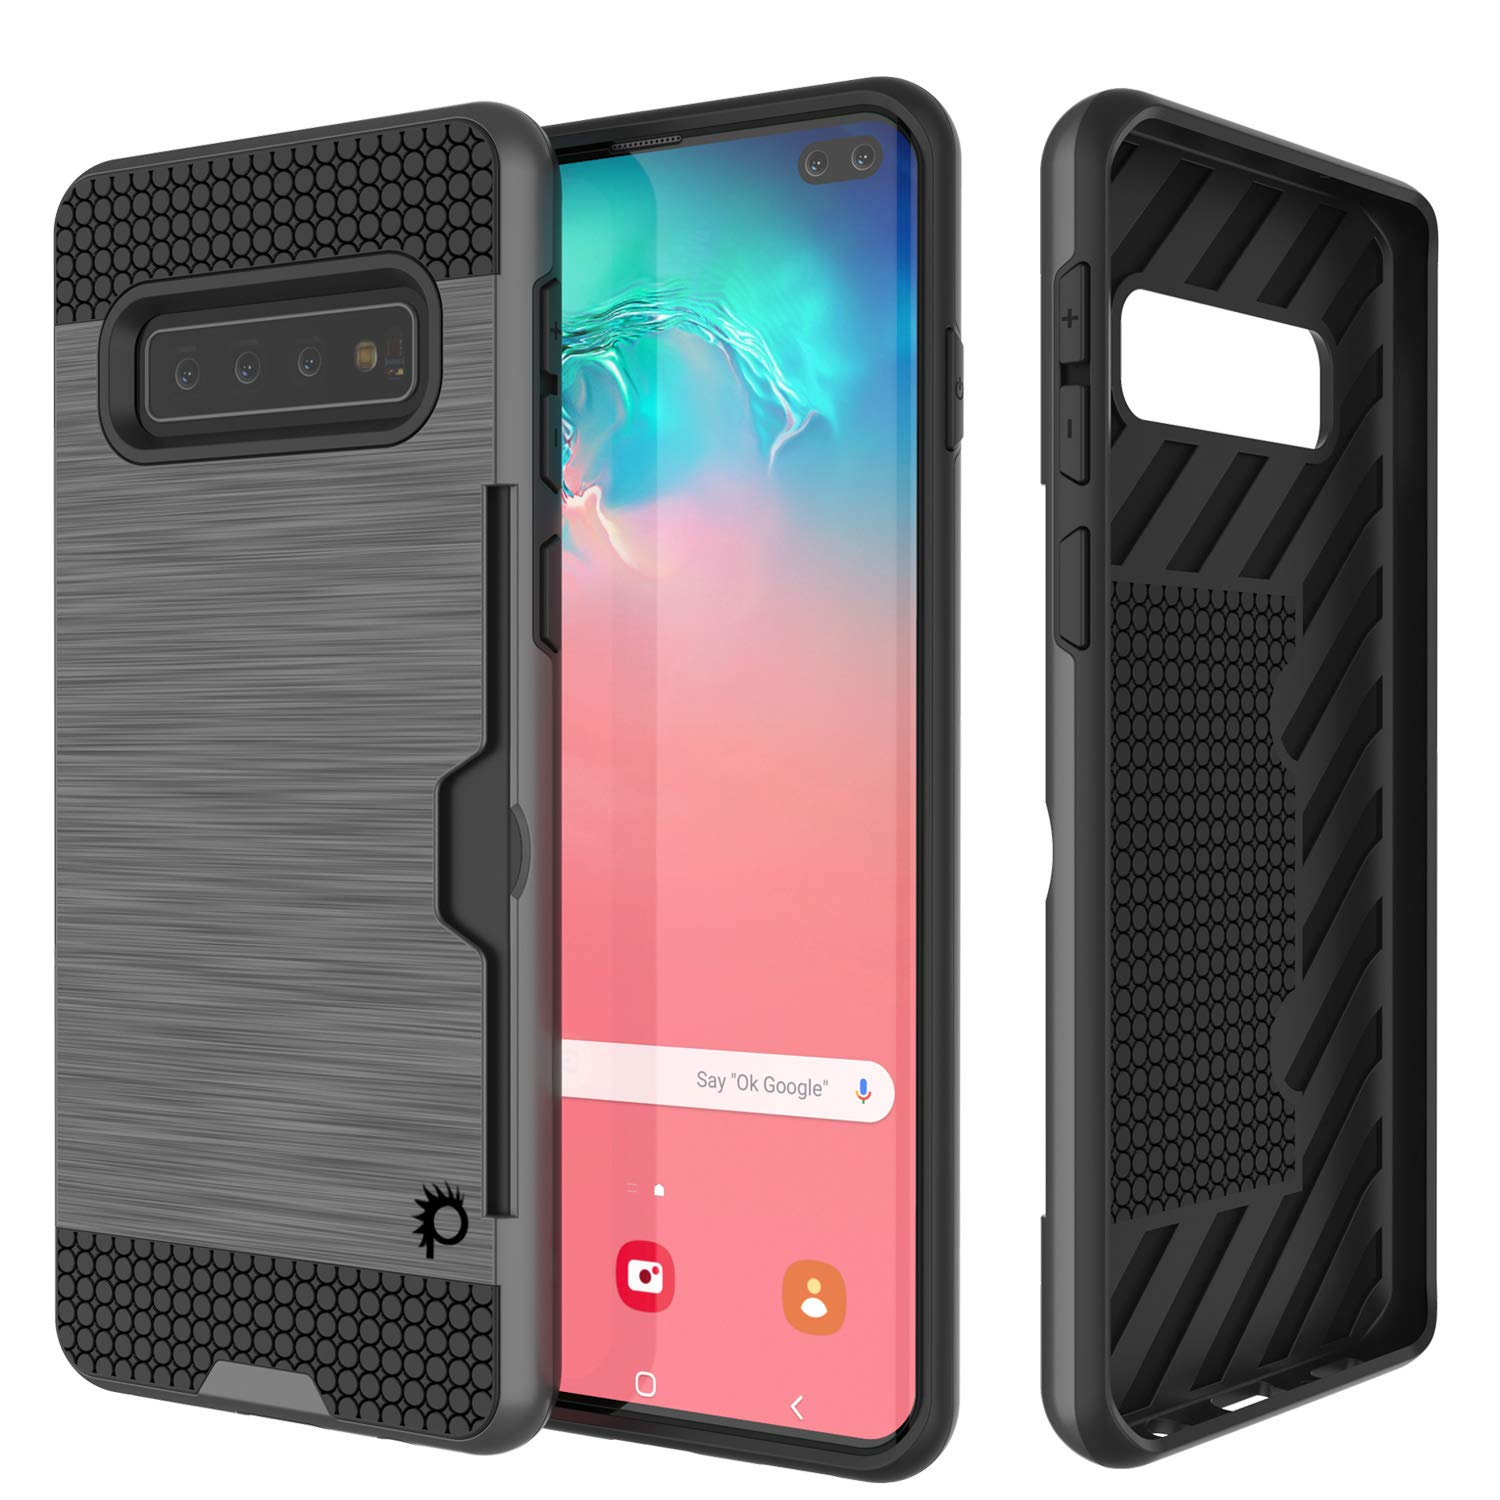 Galaxy S10+ Plus  Case, PUNKcase [SLOT Series] [Slim Fit] Dual-Layer Armor Cover w/Integrated Anti-Shock System, Credit Card Slot [Grey]